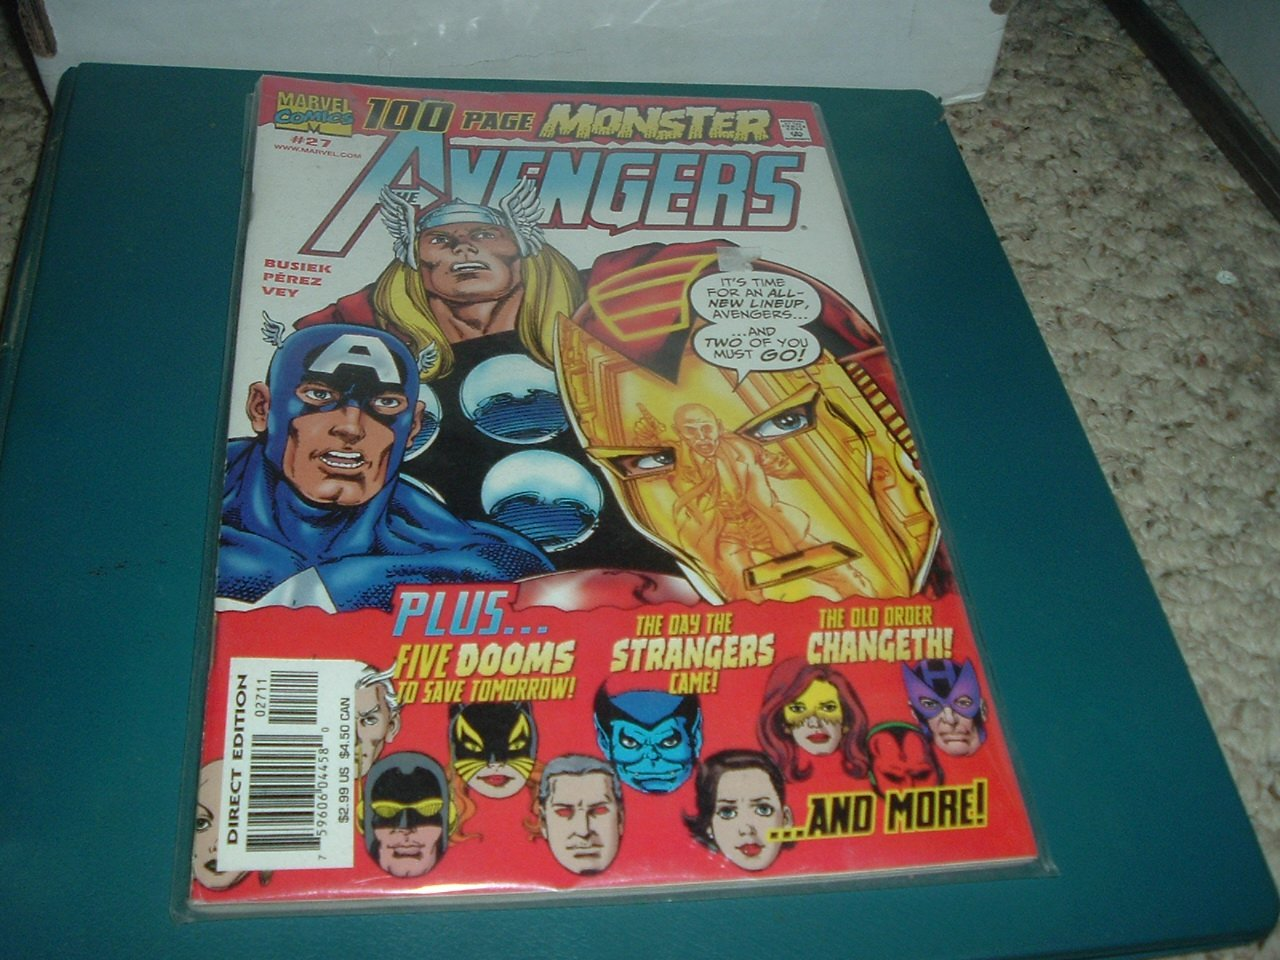 Avengers #27 100-Page Monster Sized comic (Marvel Comics 2000) Busiek, Perez, comic for sale